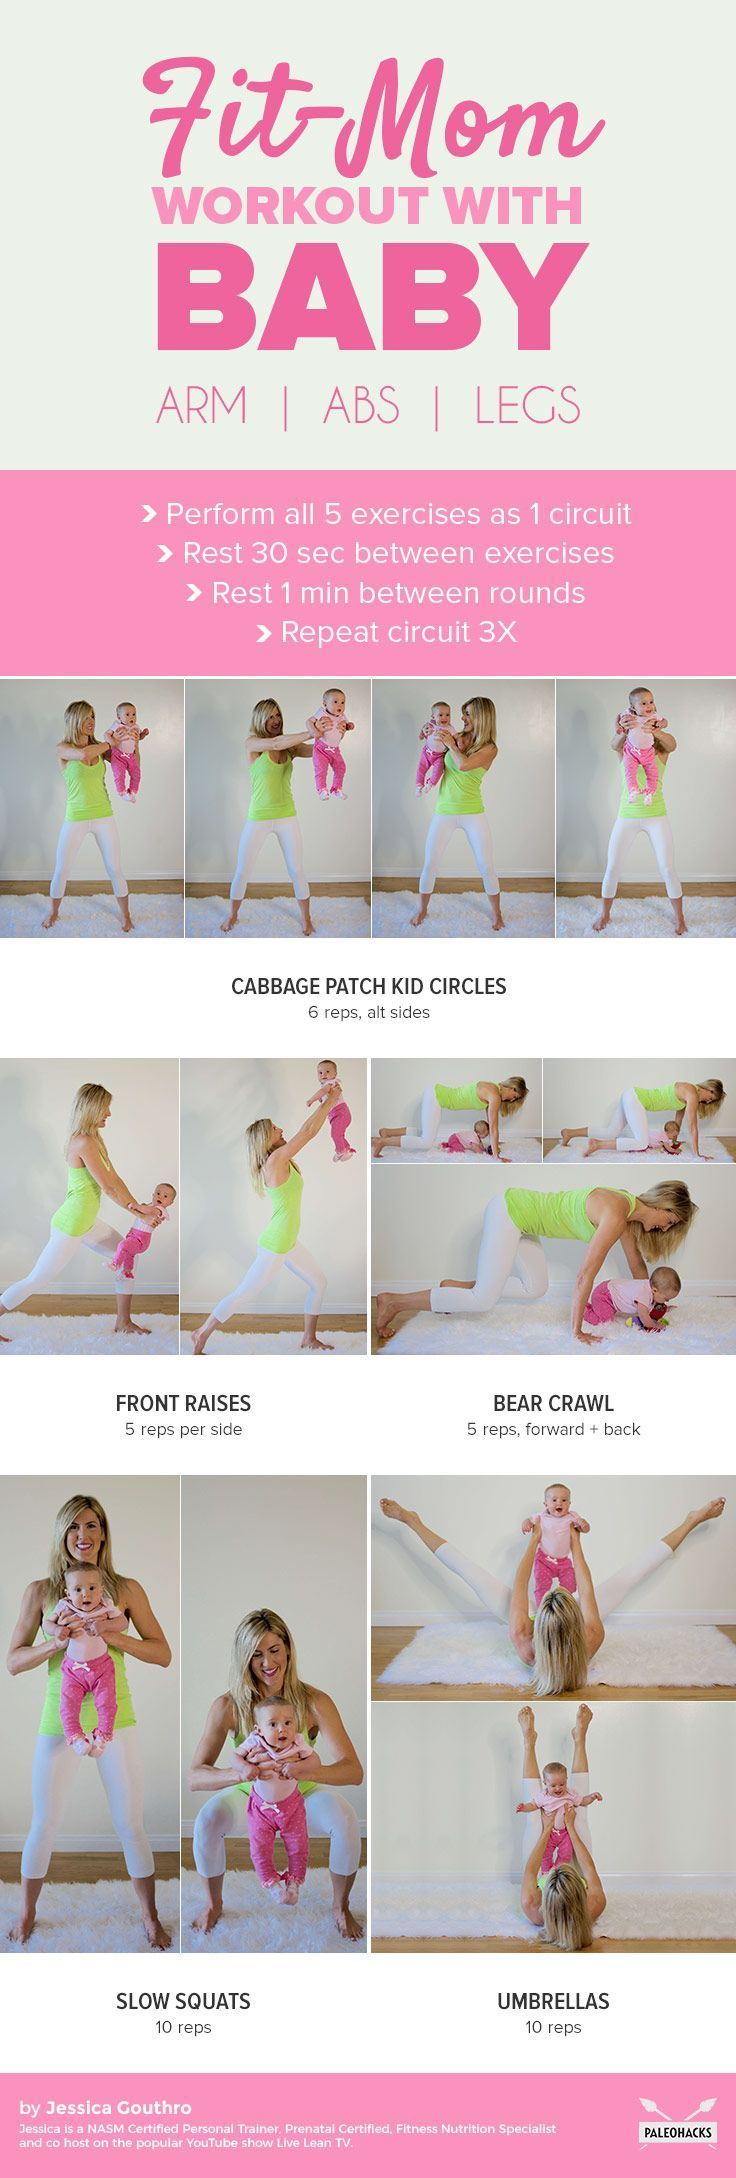 Mom & Baby Exercises to Flatten Abs and Strengthen Arms